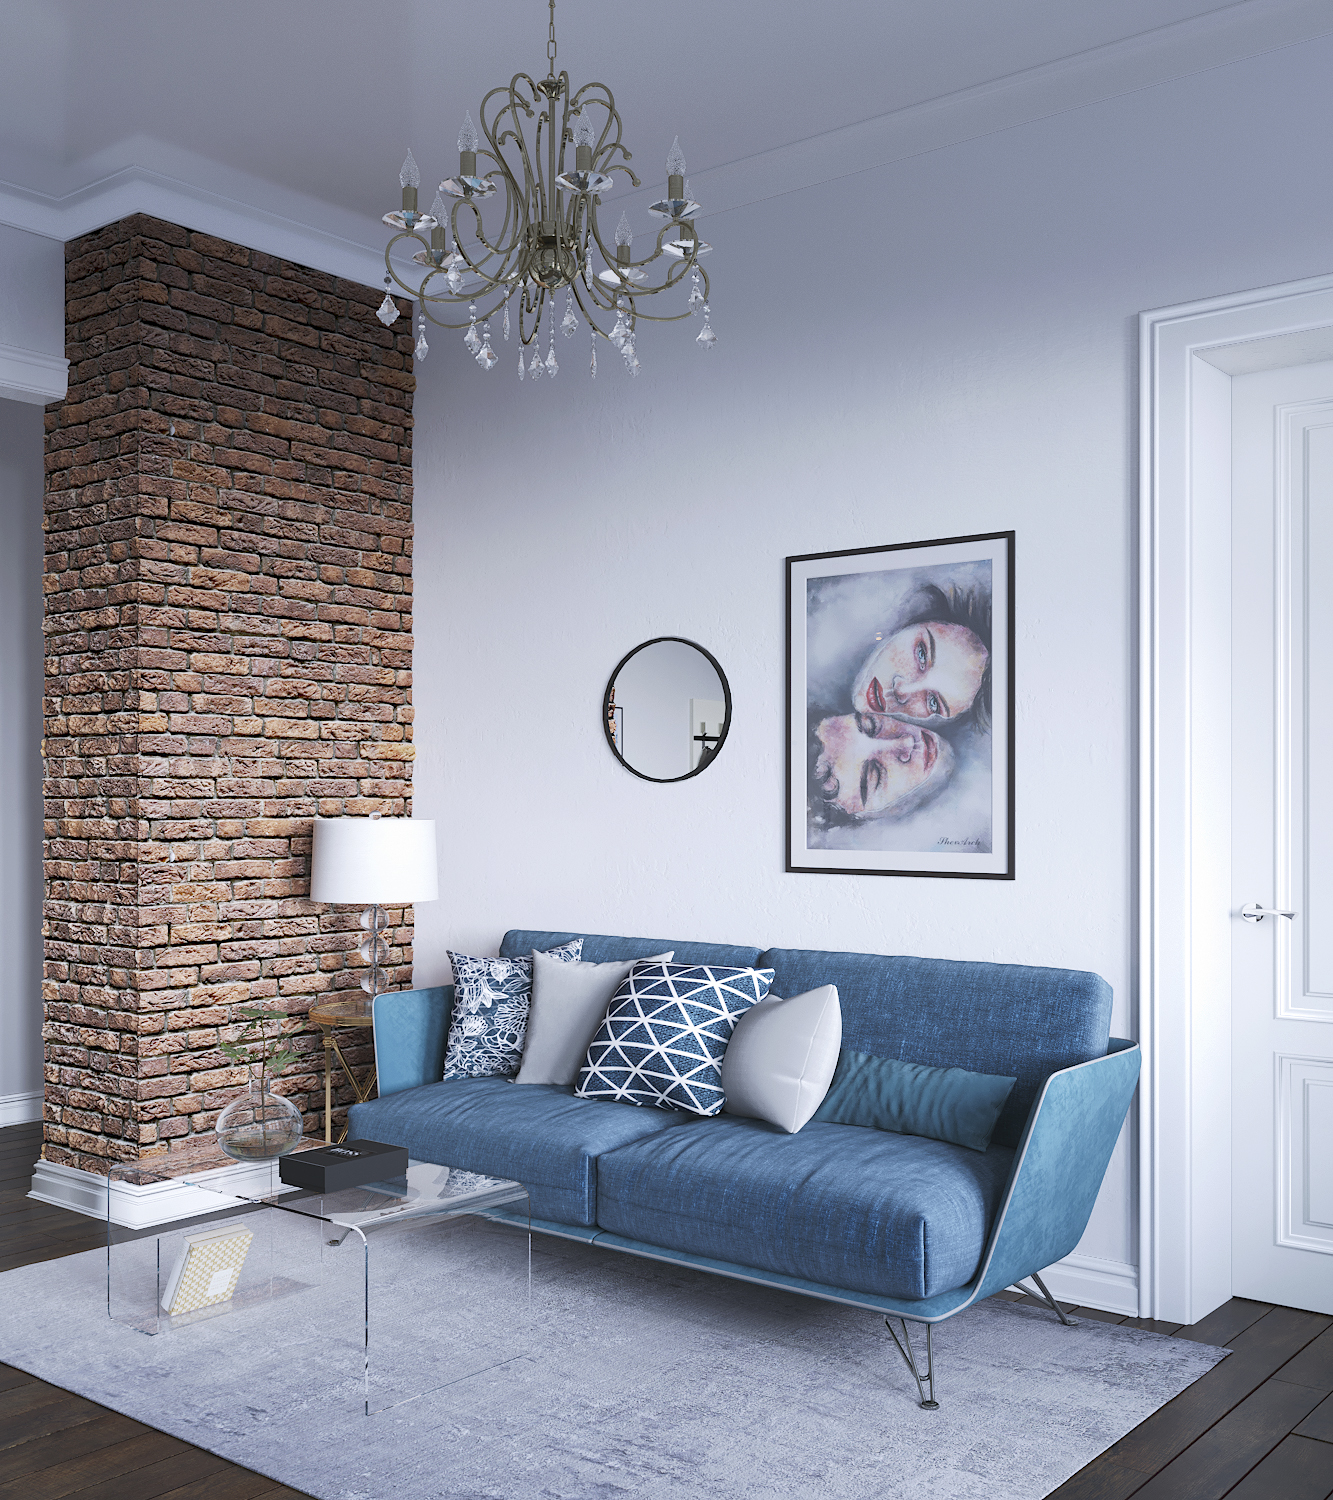 Interior visualisation in 3d max corona render image